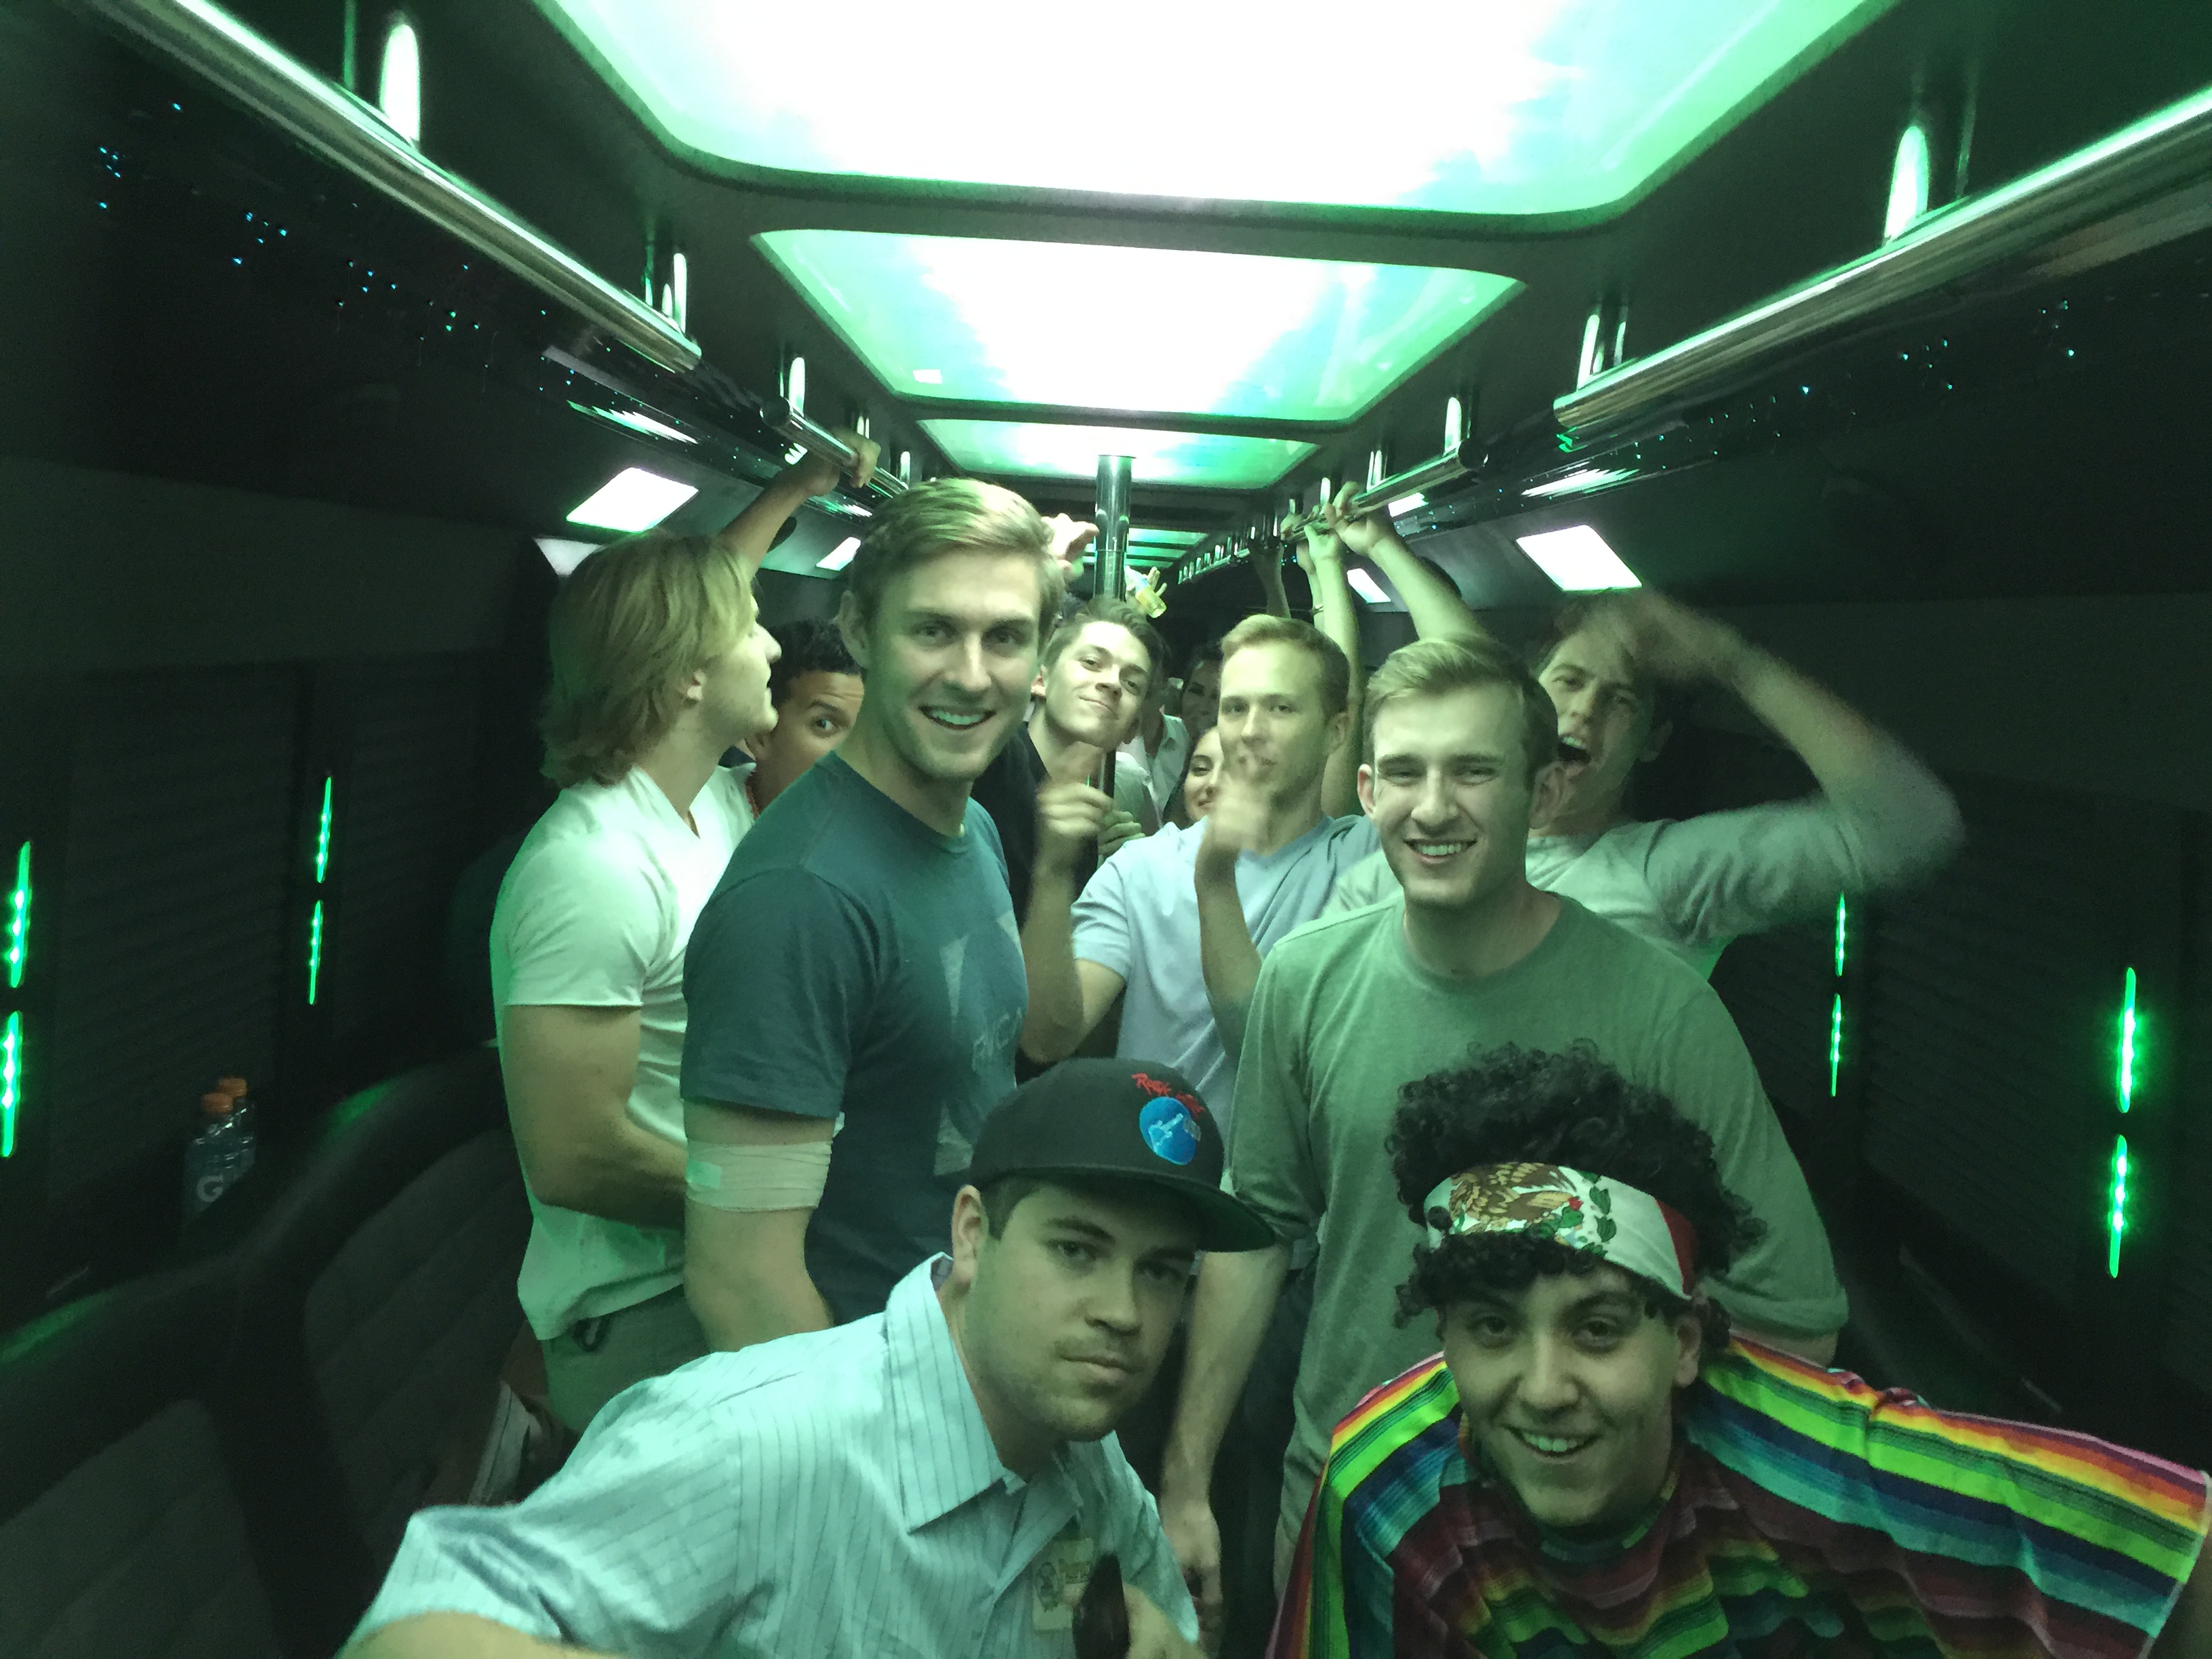 Party Bus Fun!